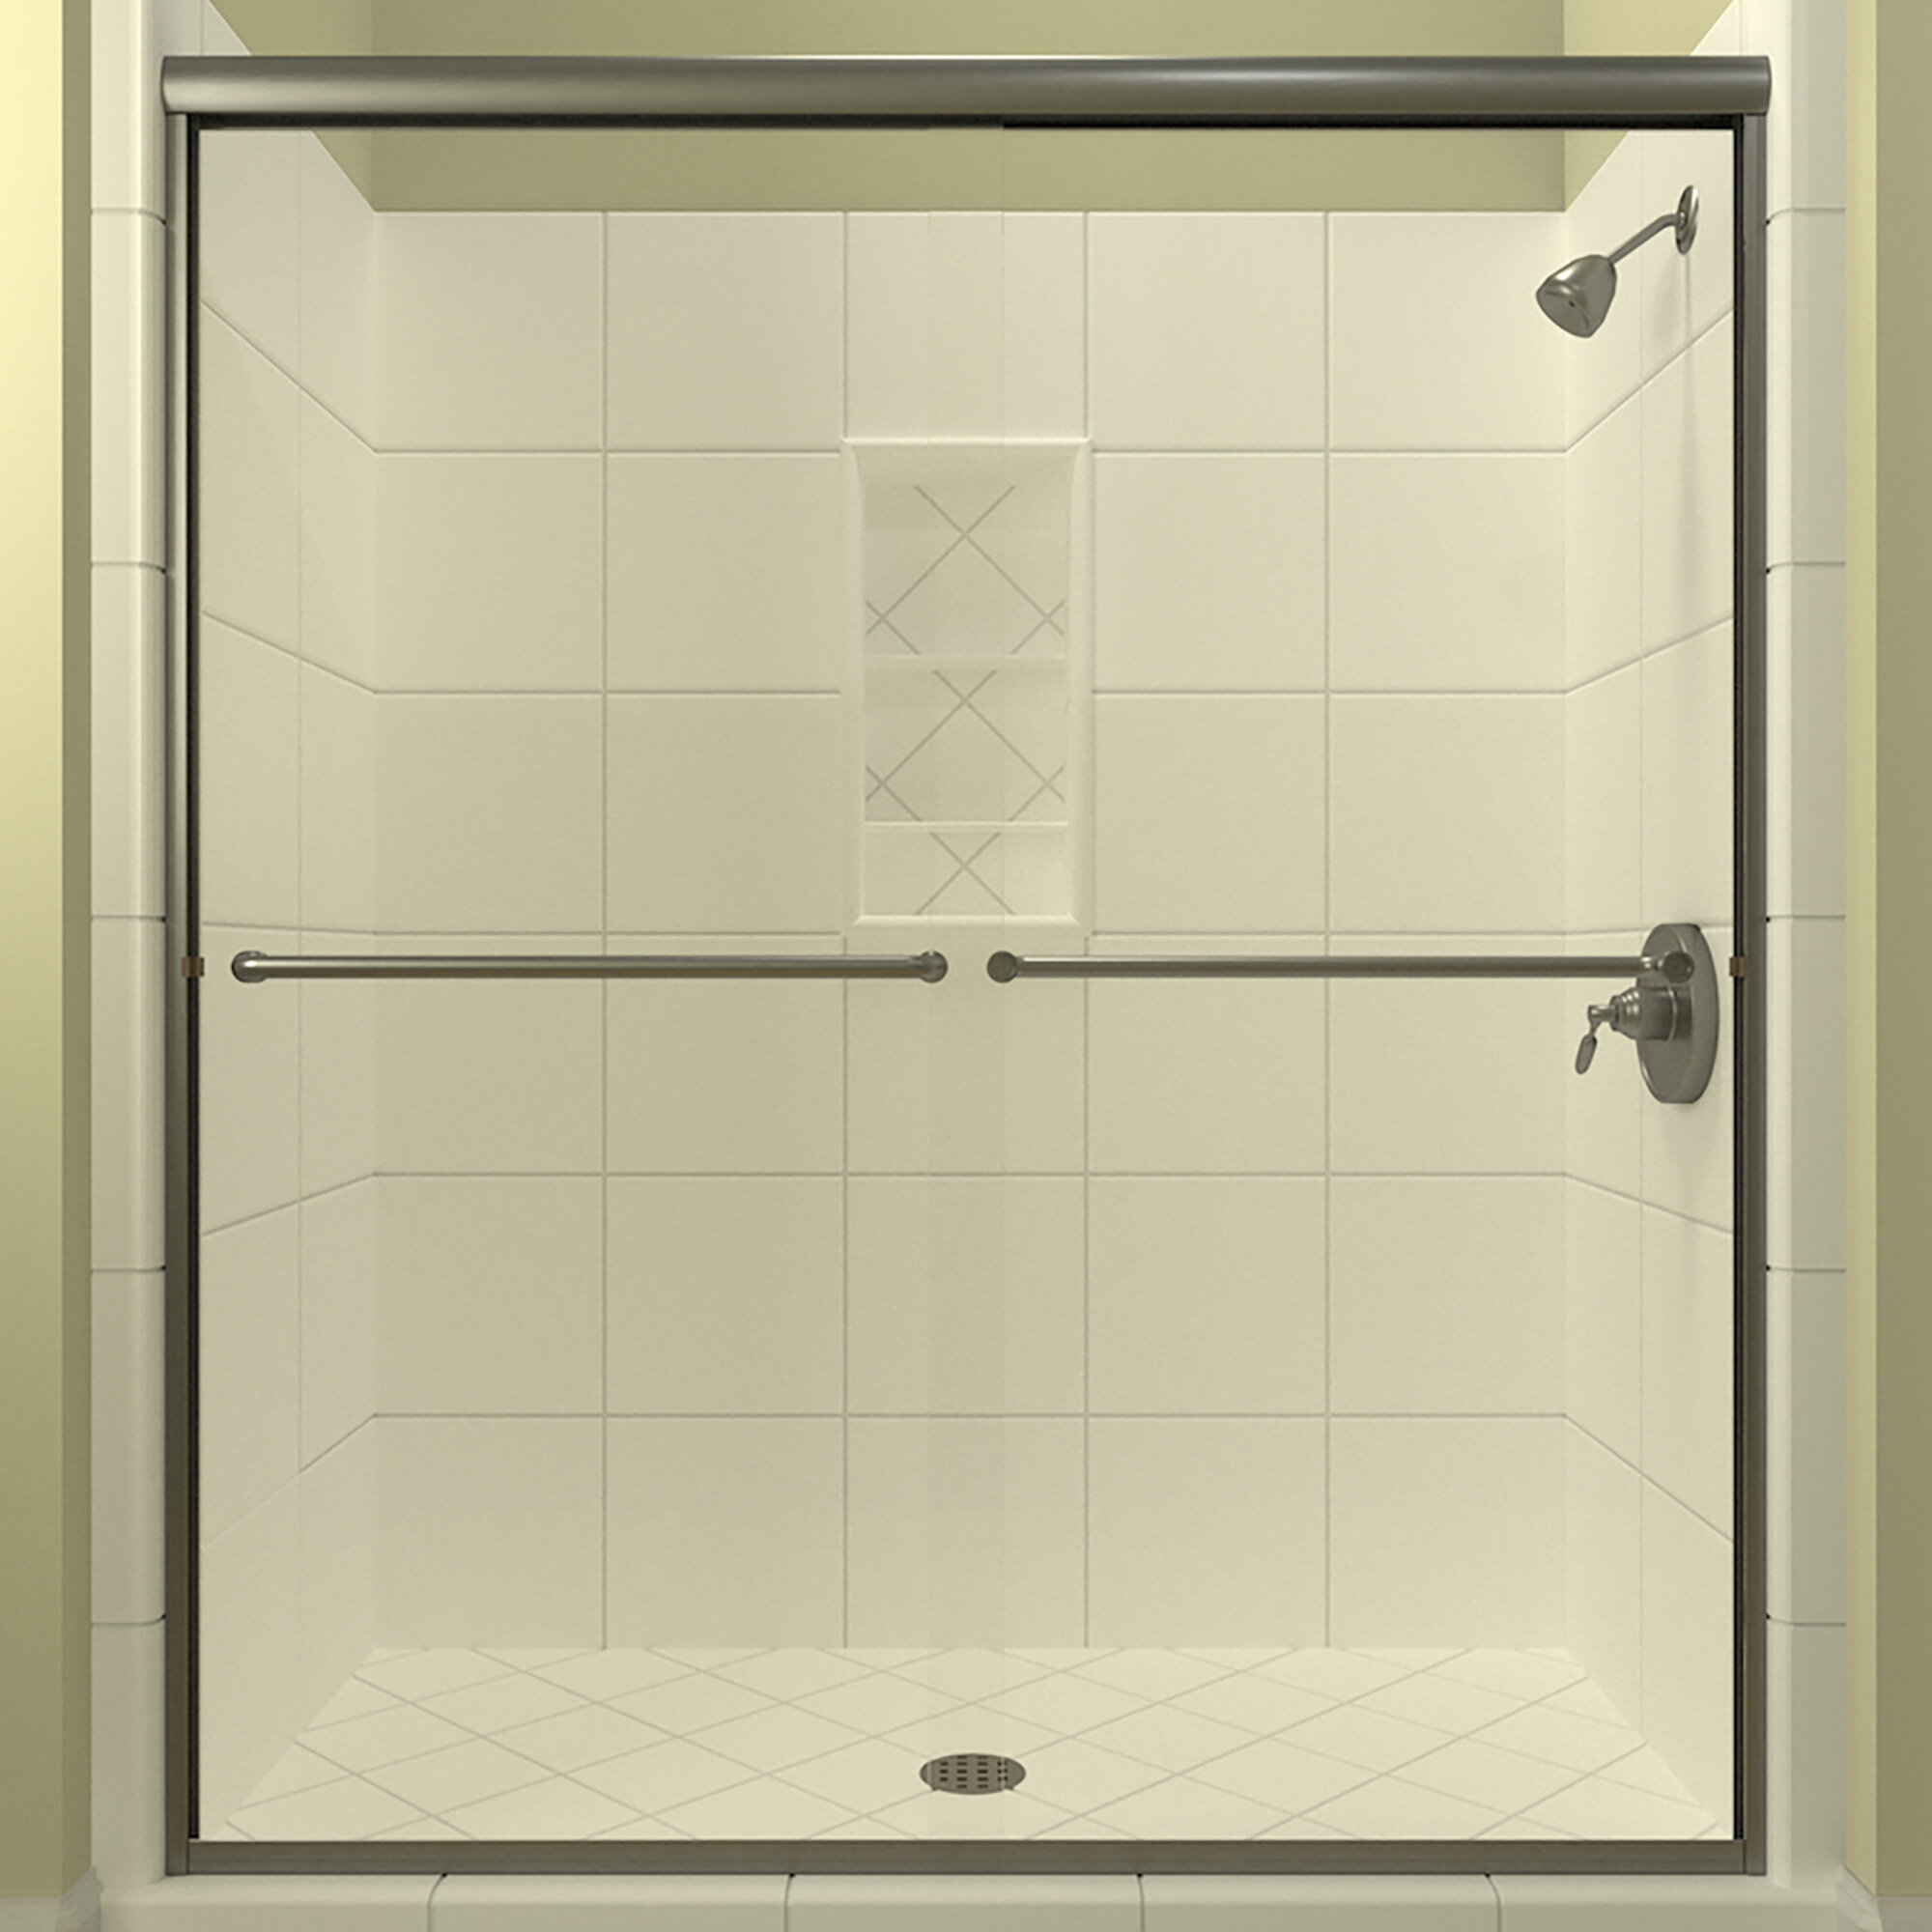 Details About Ese 60 X 76 38 Bypass Semi Frameless Shower Door Brushed Nickel 0 25